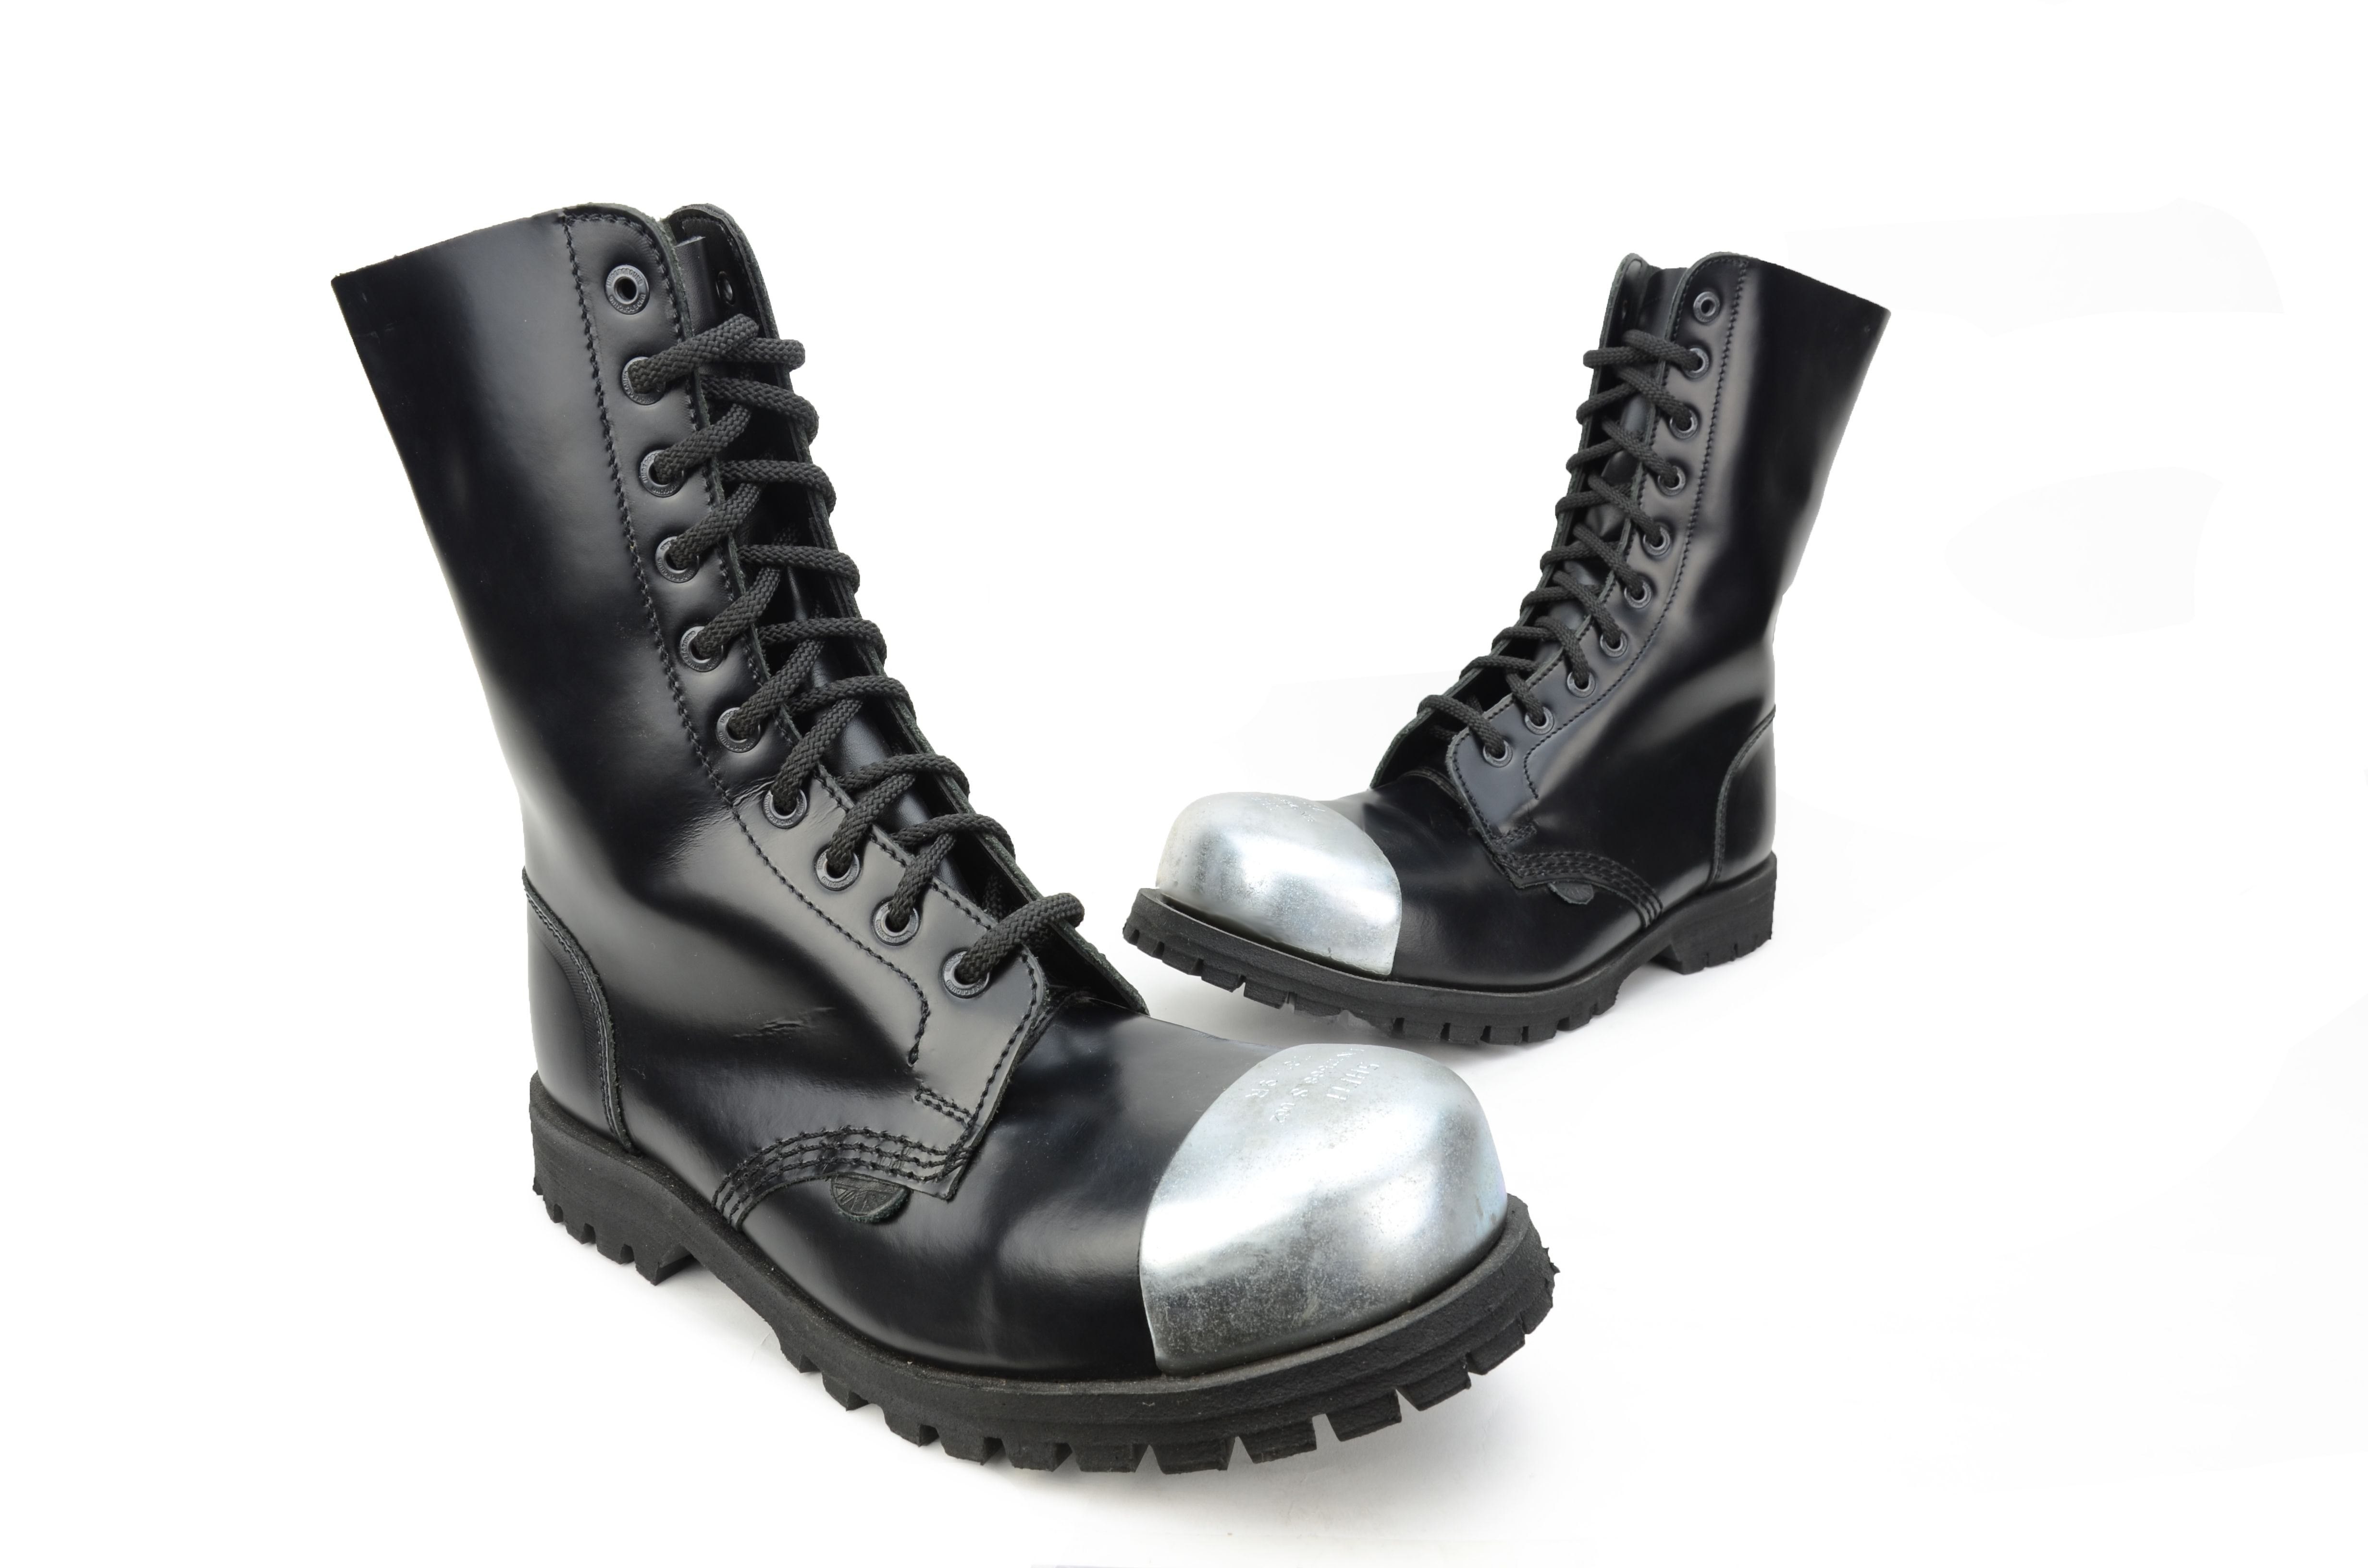 Steel cap boots, Boots, Underground shoes